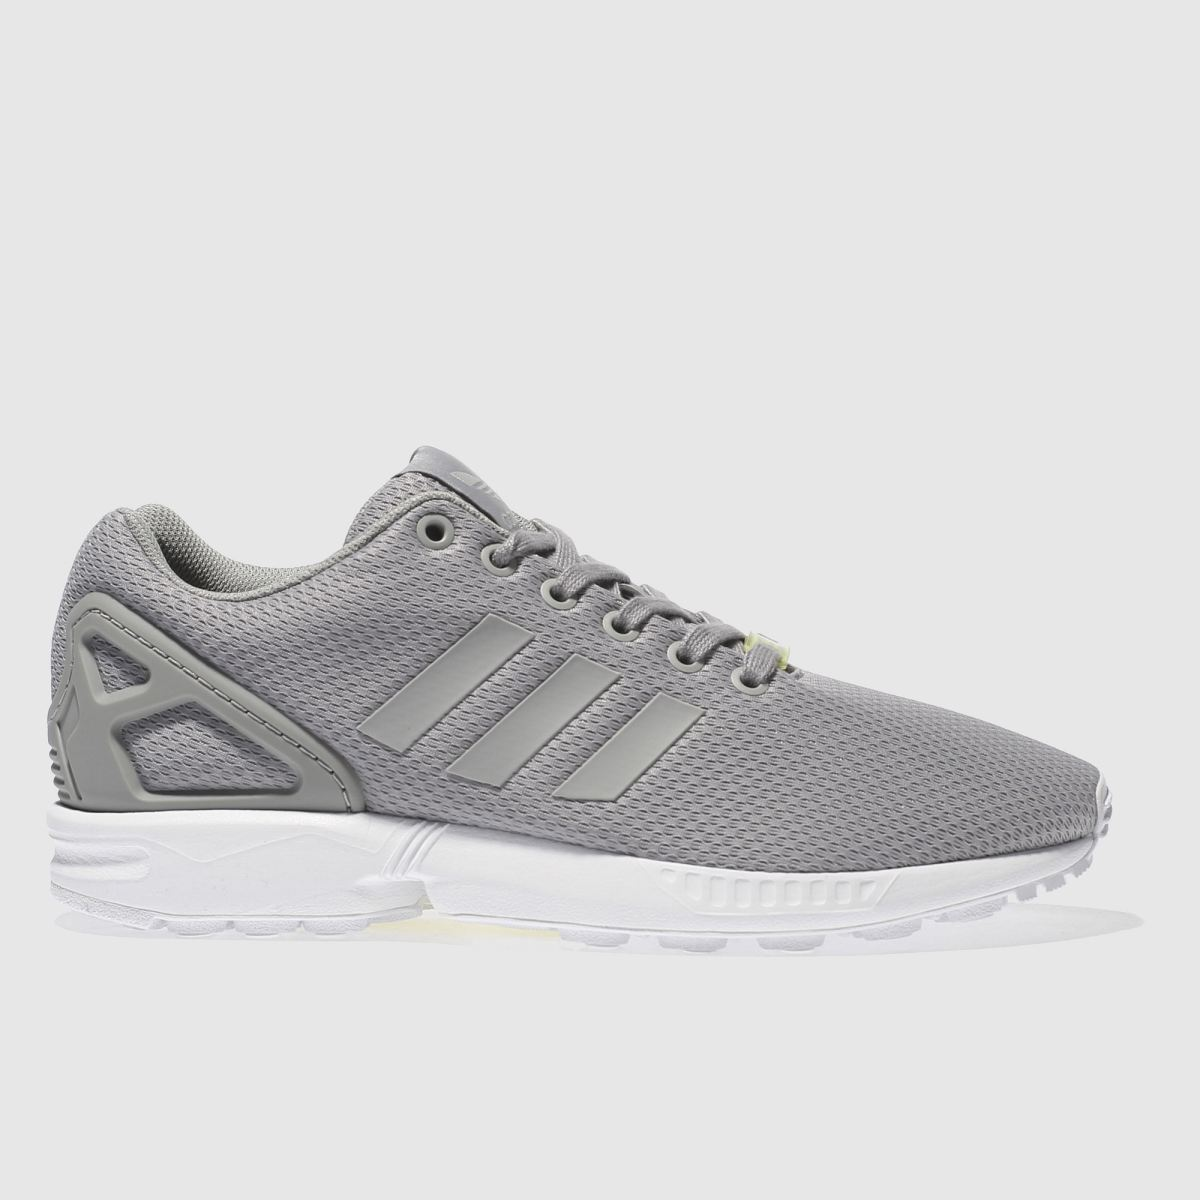 Adidas Flux Men's White